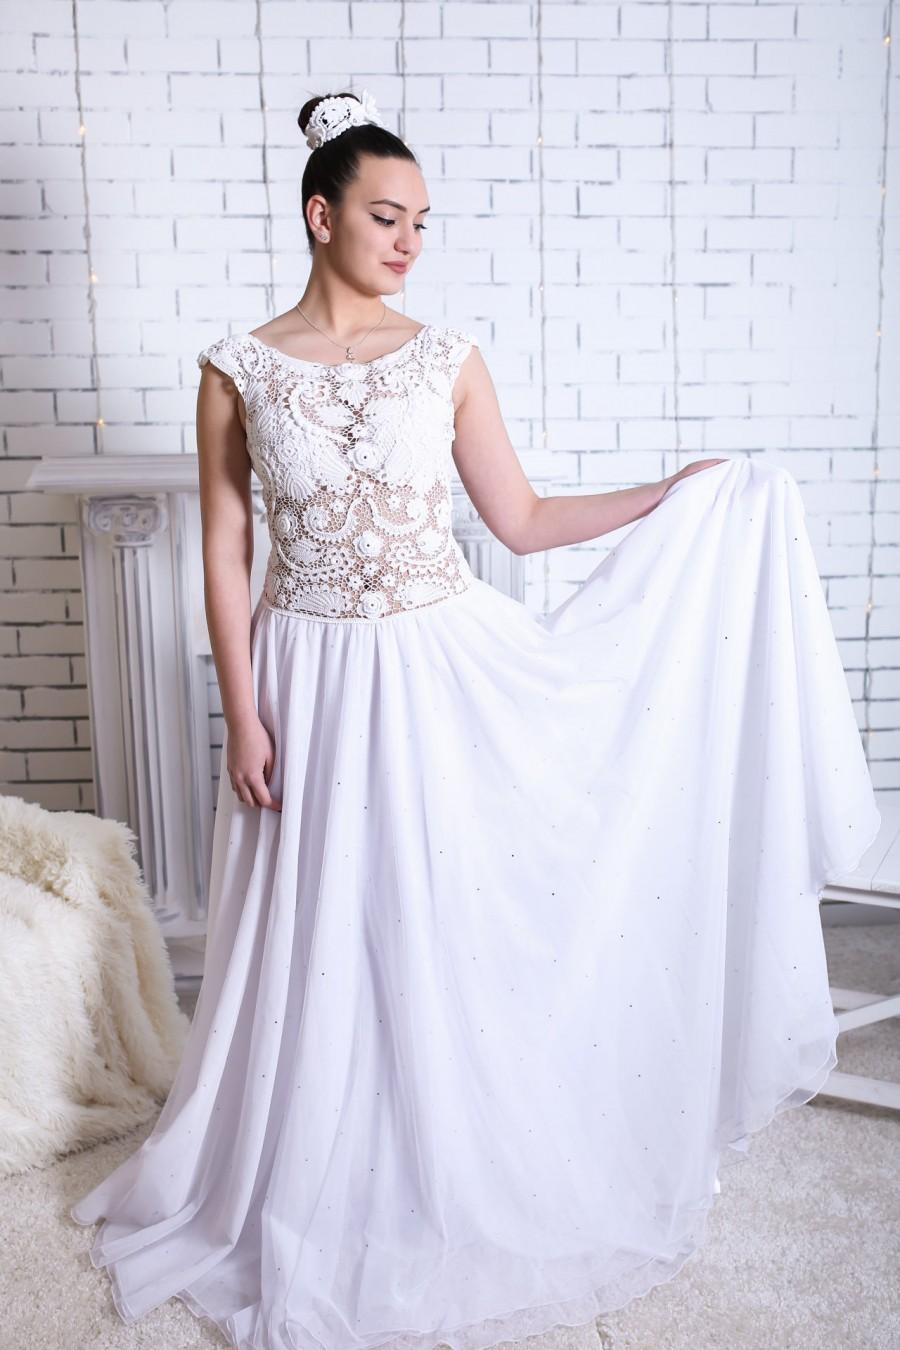 e66f097dd68 Combined bridal delicate irish gown Exquisite openwork crochet white  sleeveless dress Elegant garment special event Bride in lace maxi dress